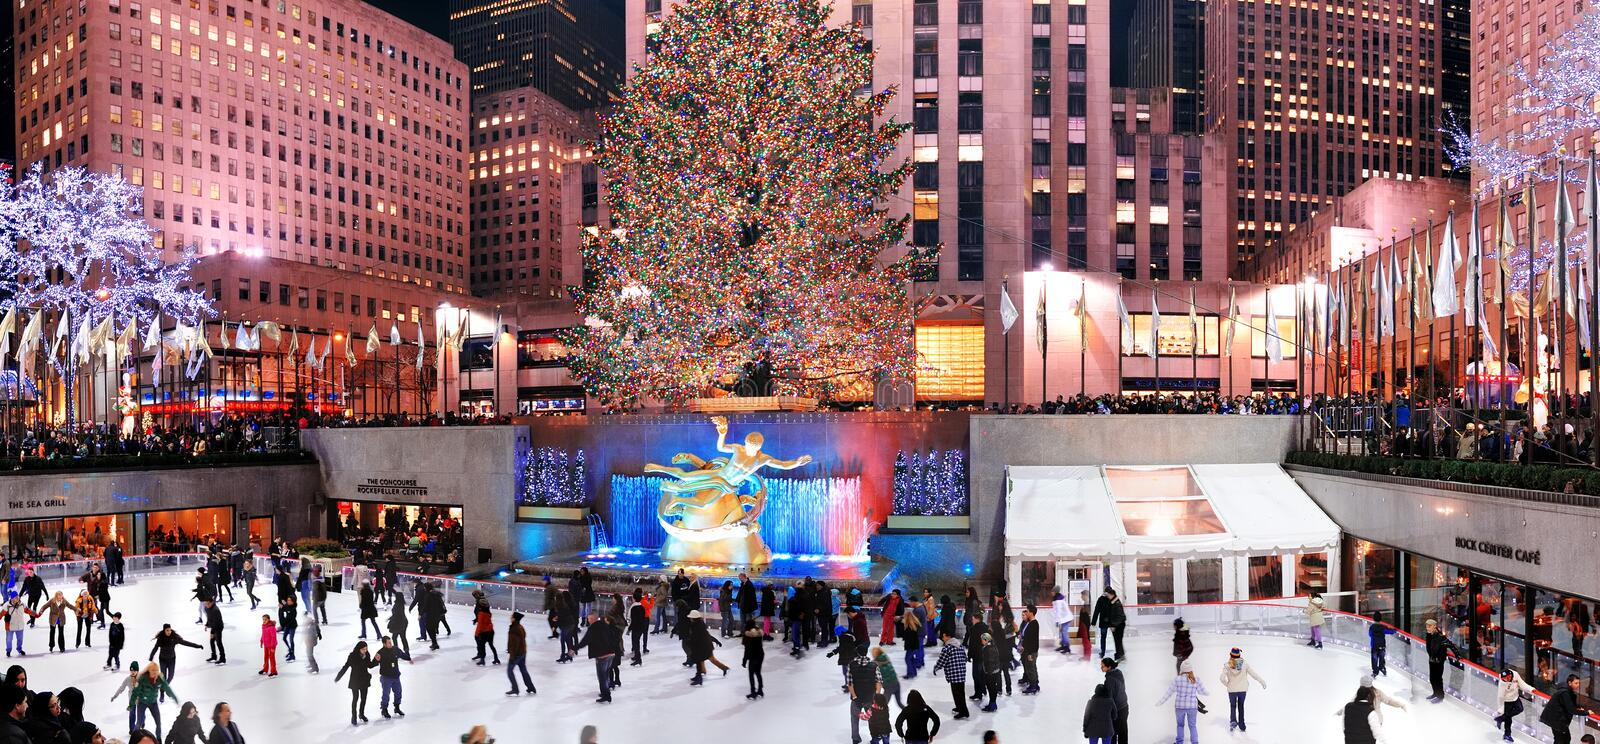 Rockefeller Center ice-skating rink royalty free stock photo